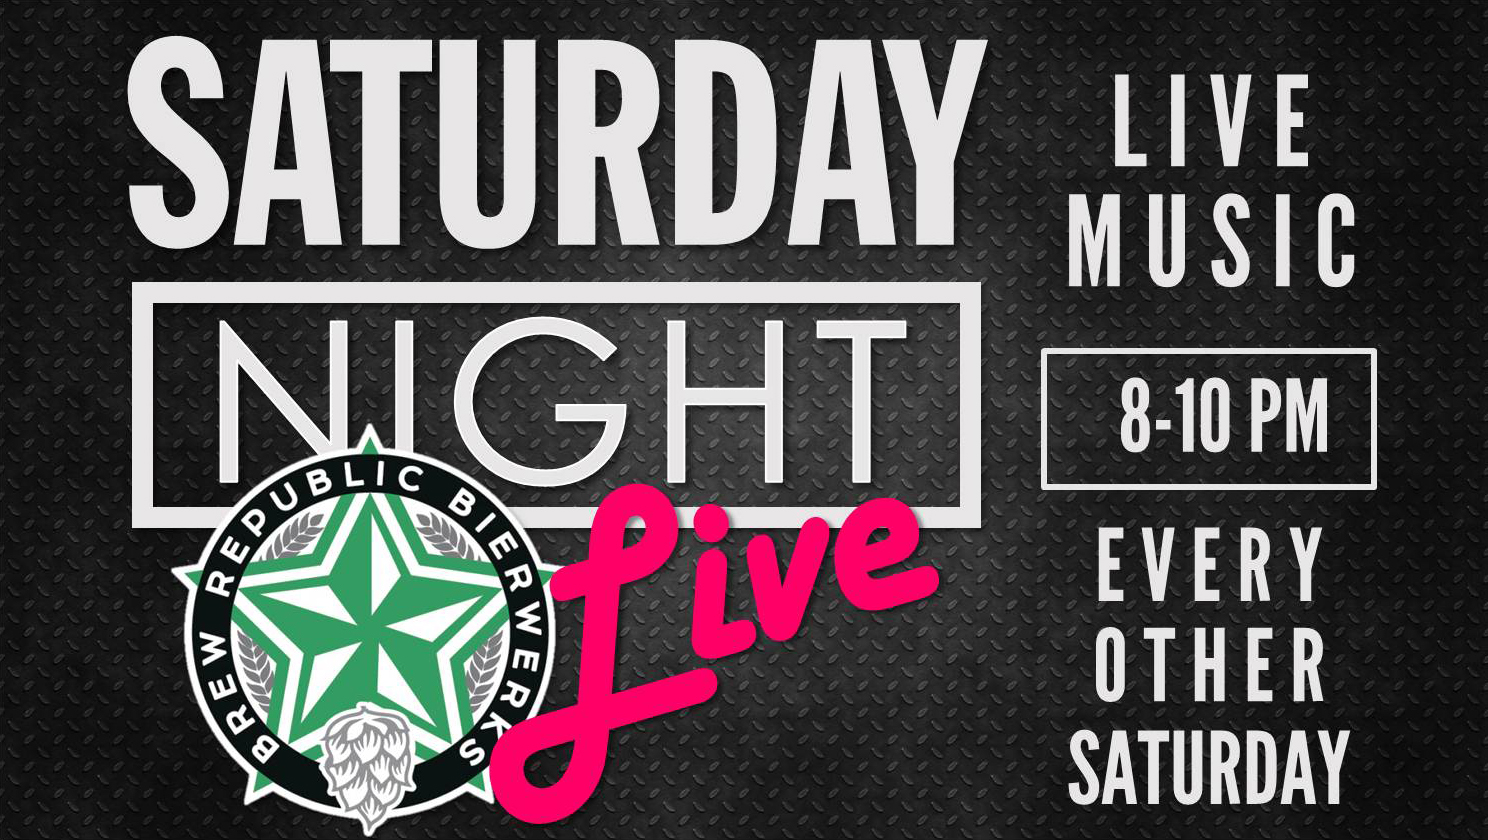 Live Music every other Saturday